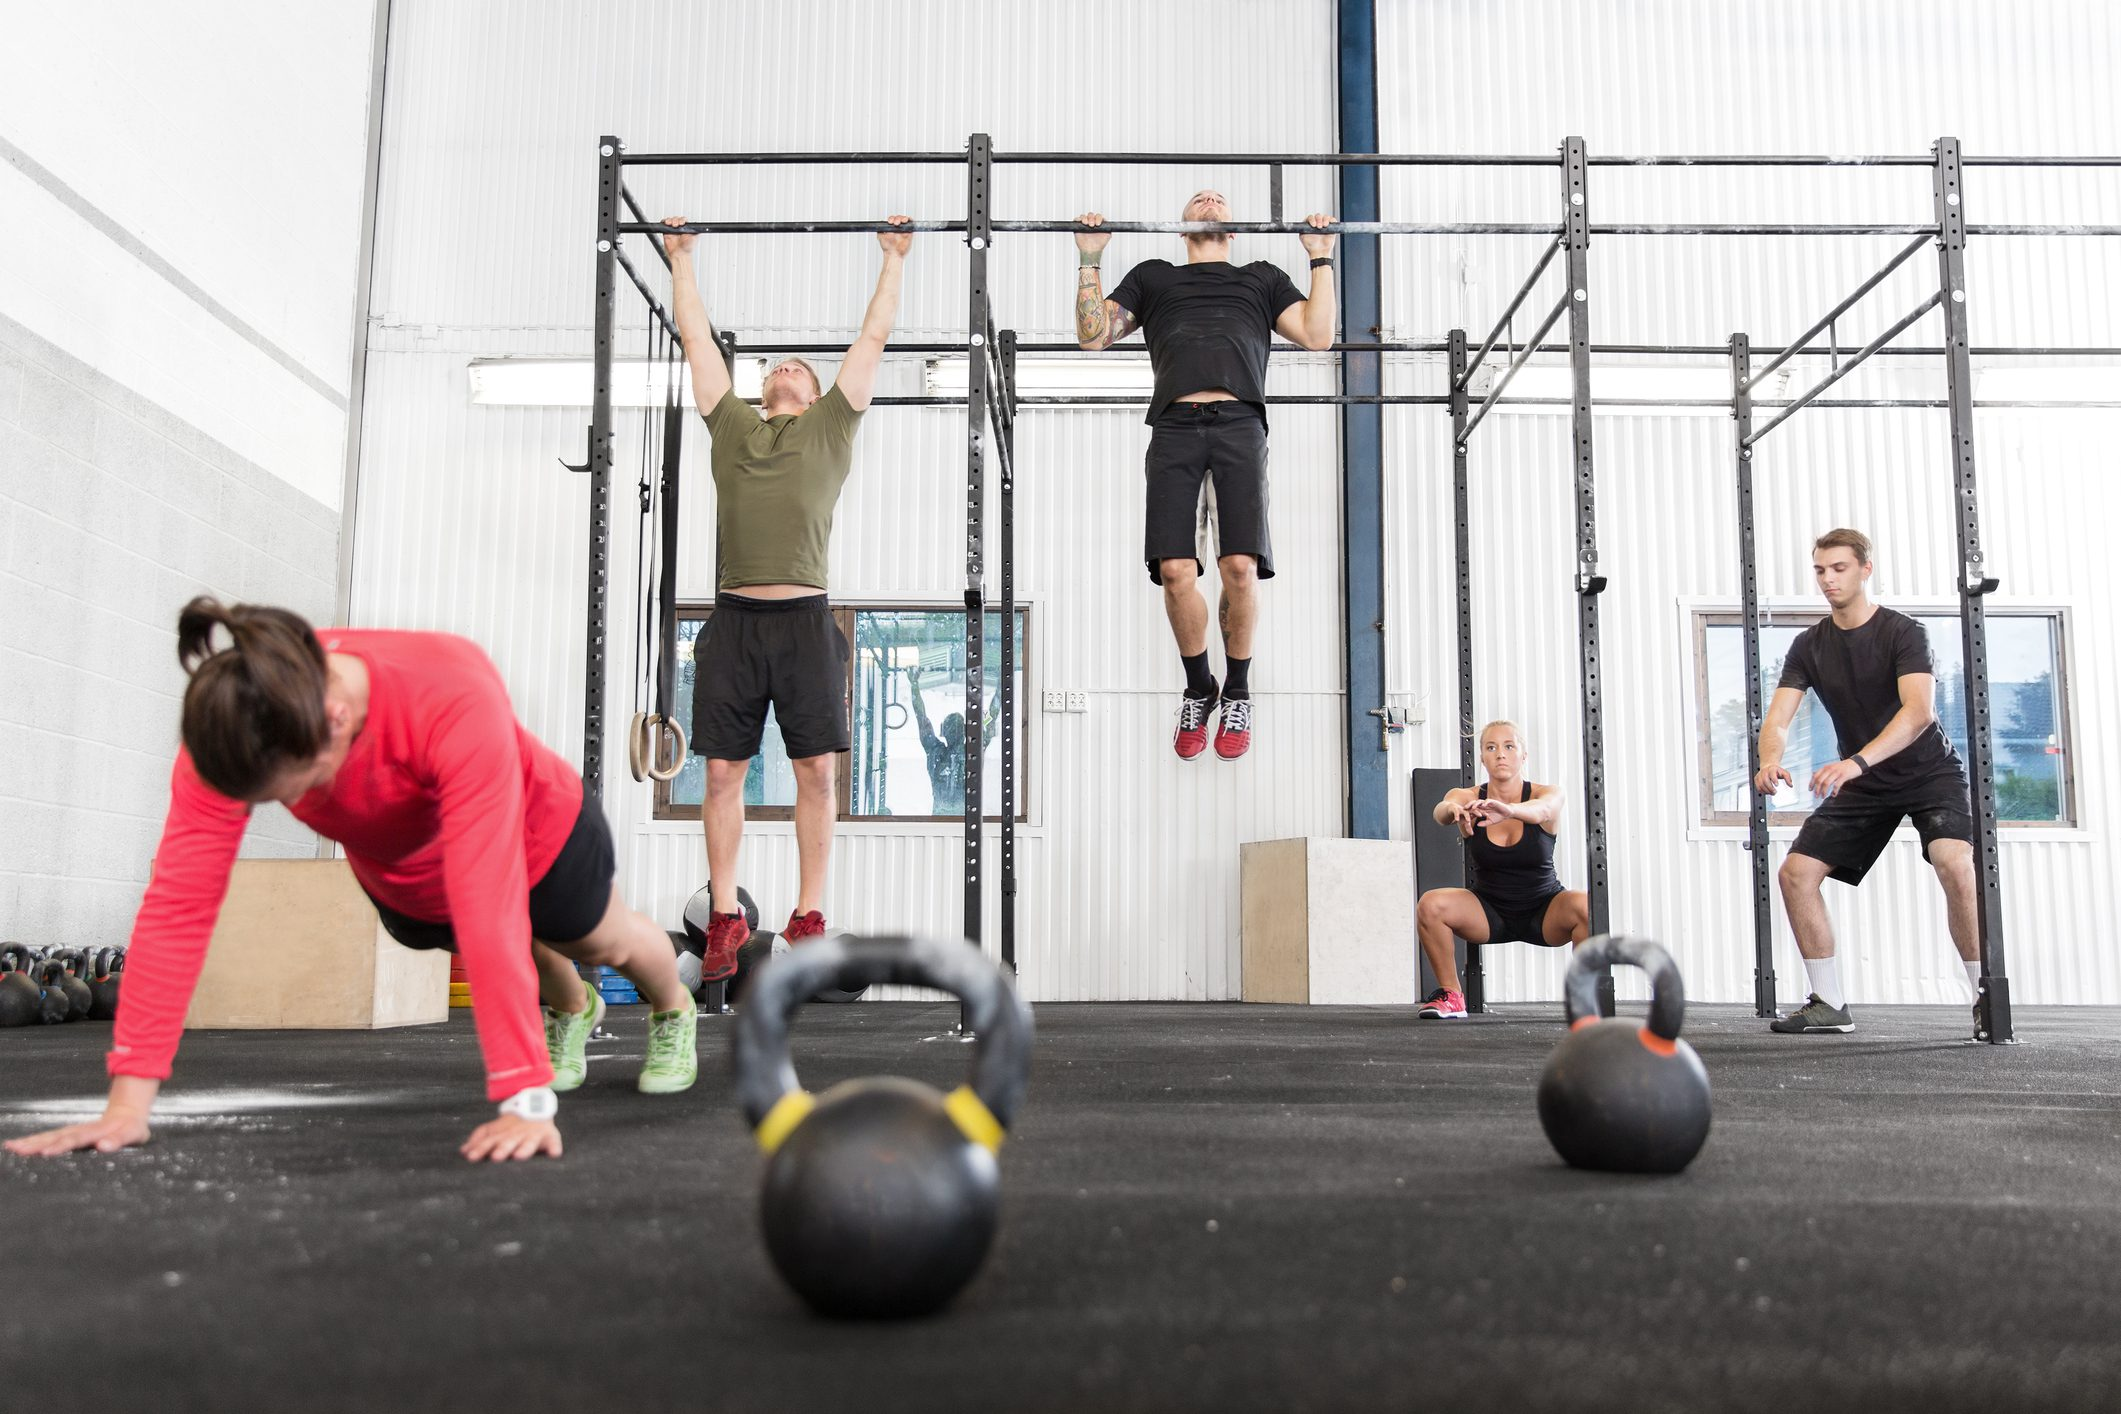 crossfit doing pushups, pull ups and squats